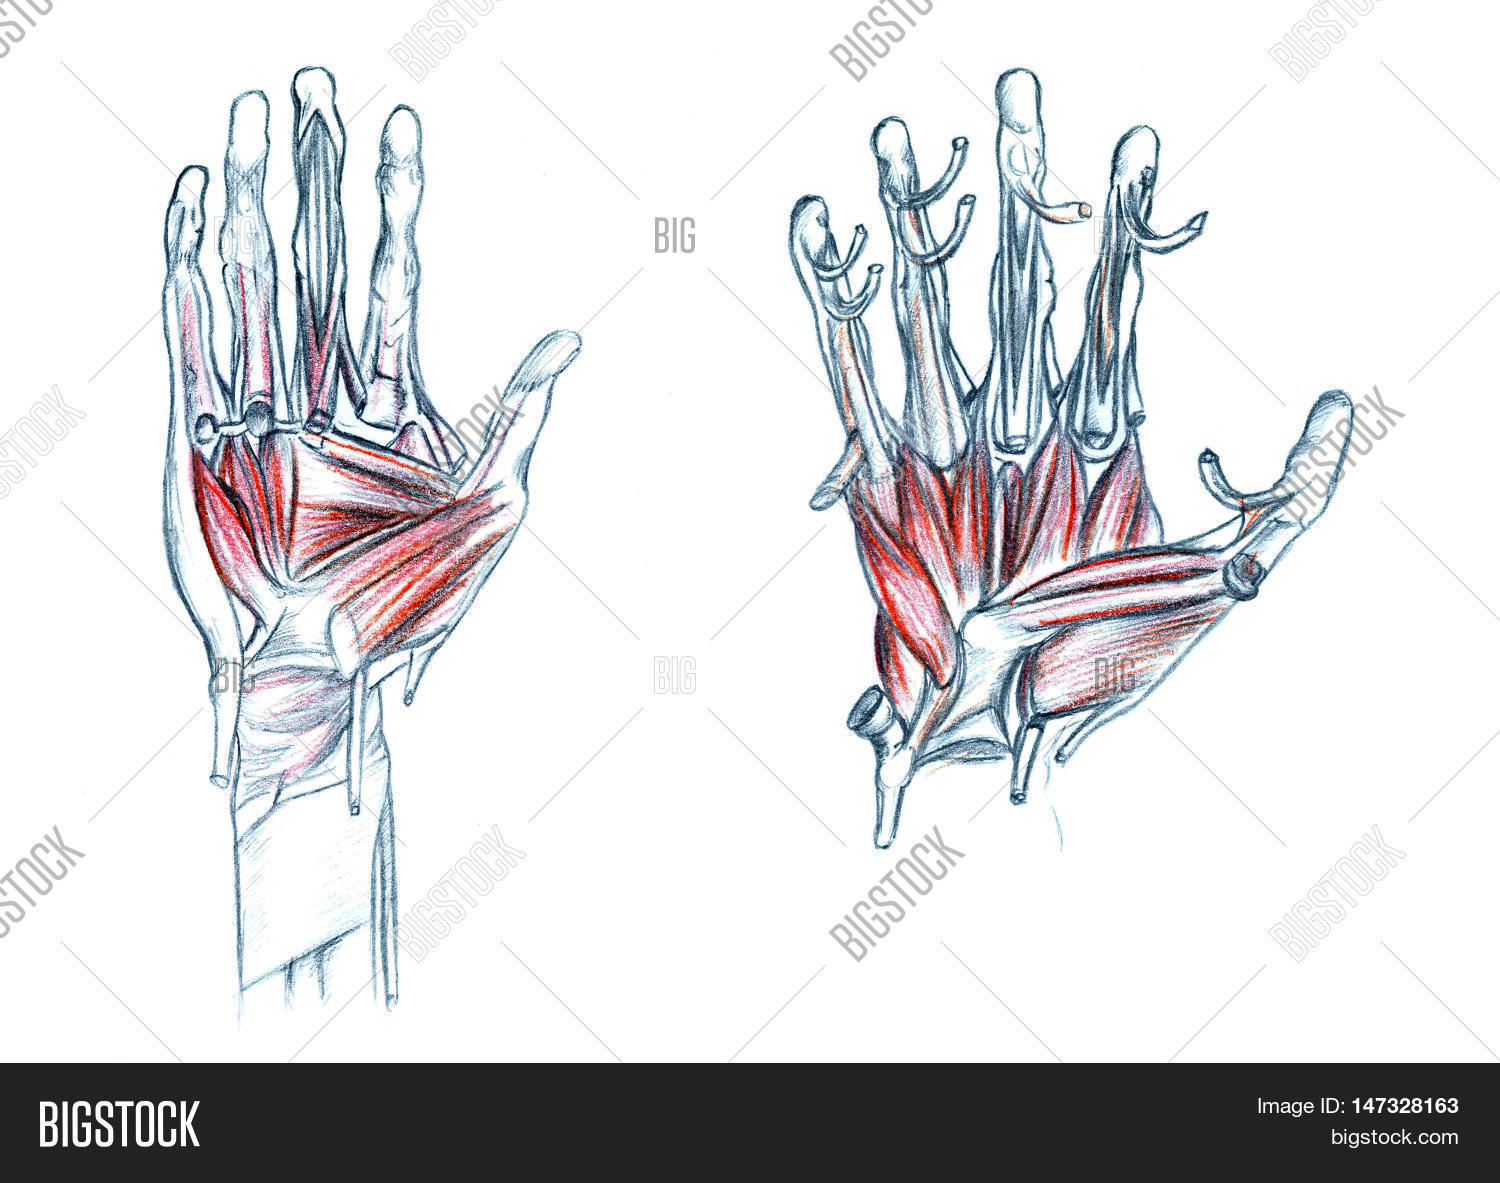 Hand Drawn Medical Image Photo Free Trial Bigstock